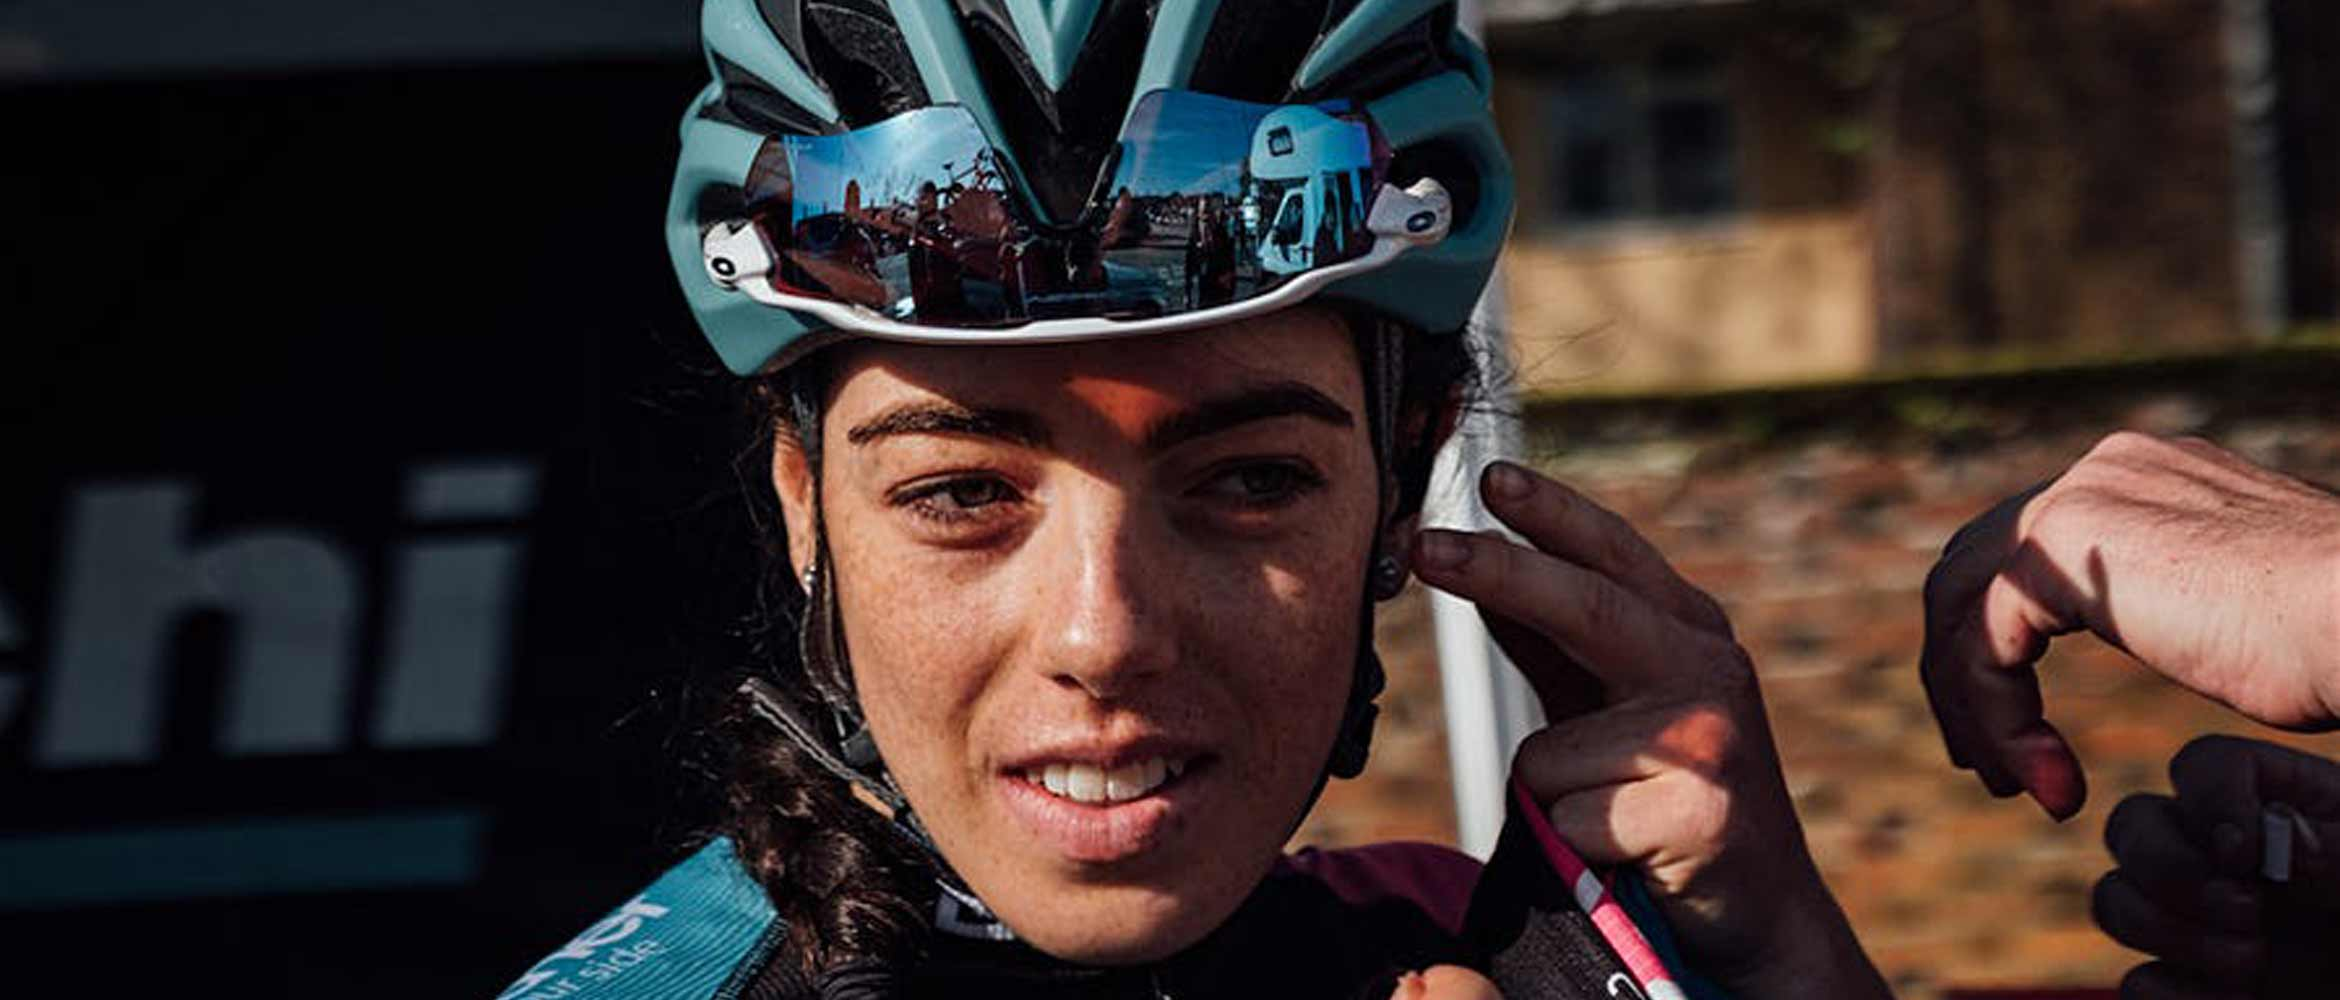 Anna Henderson, from Cycling Team OnForm